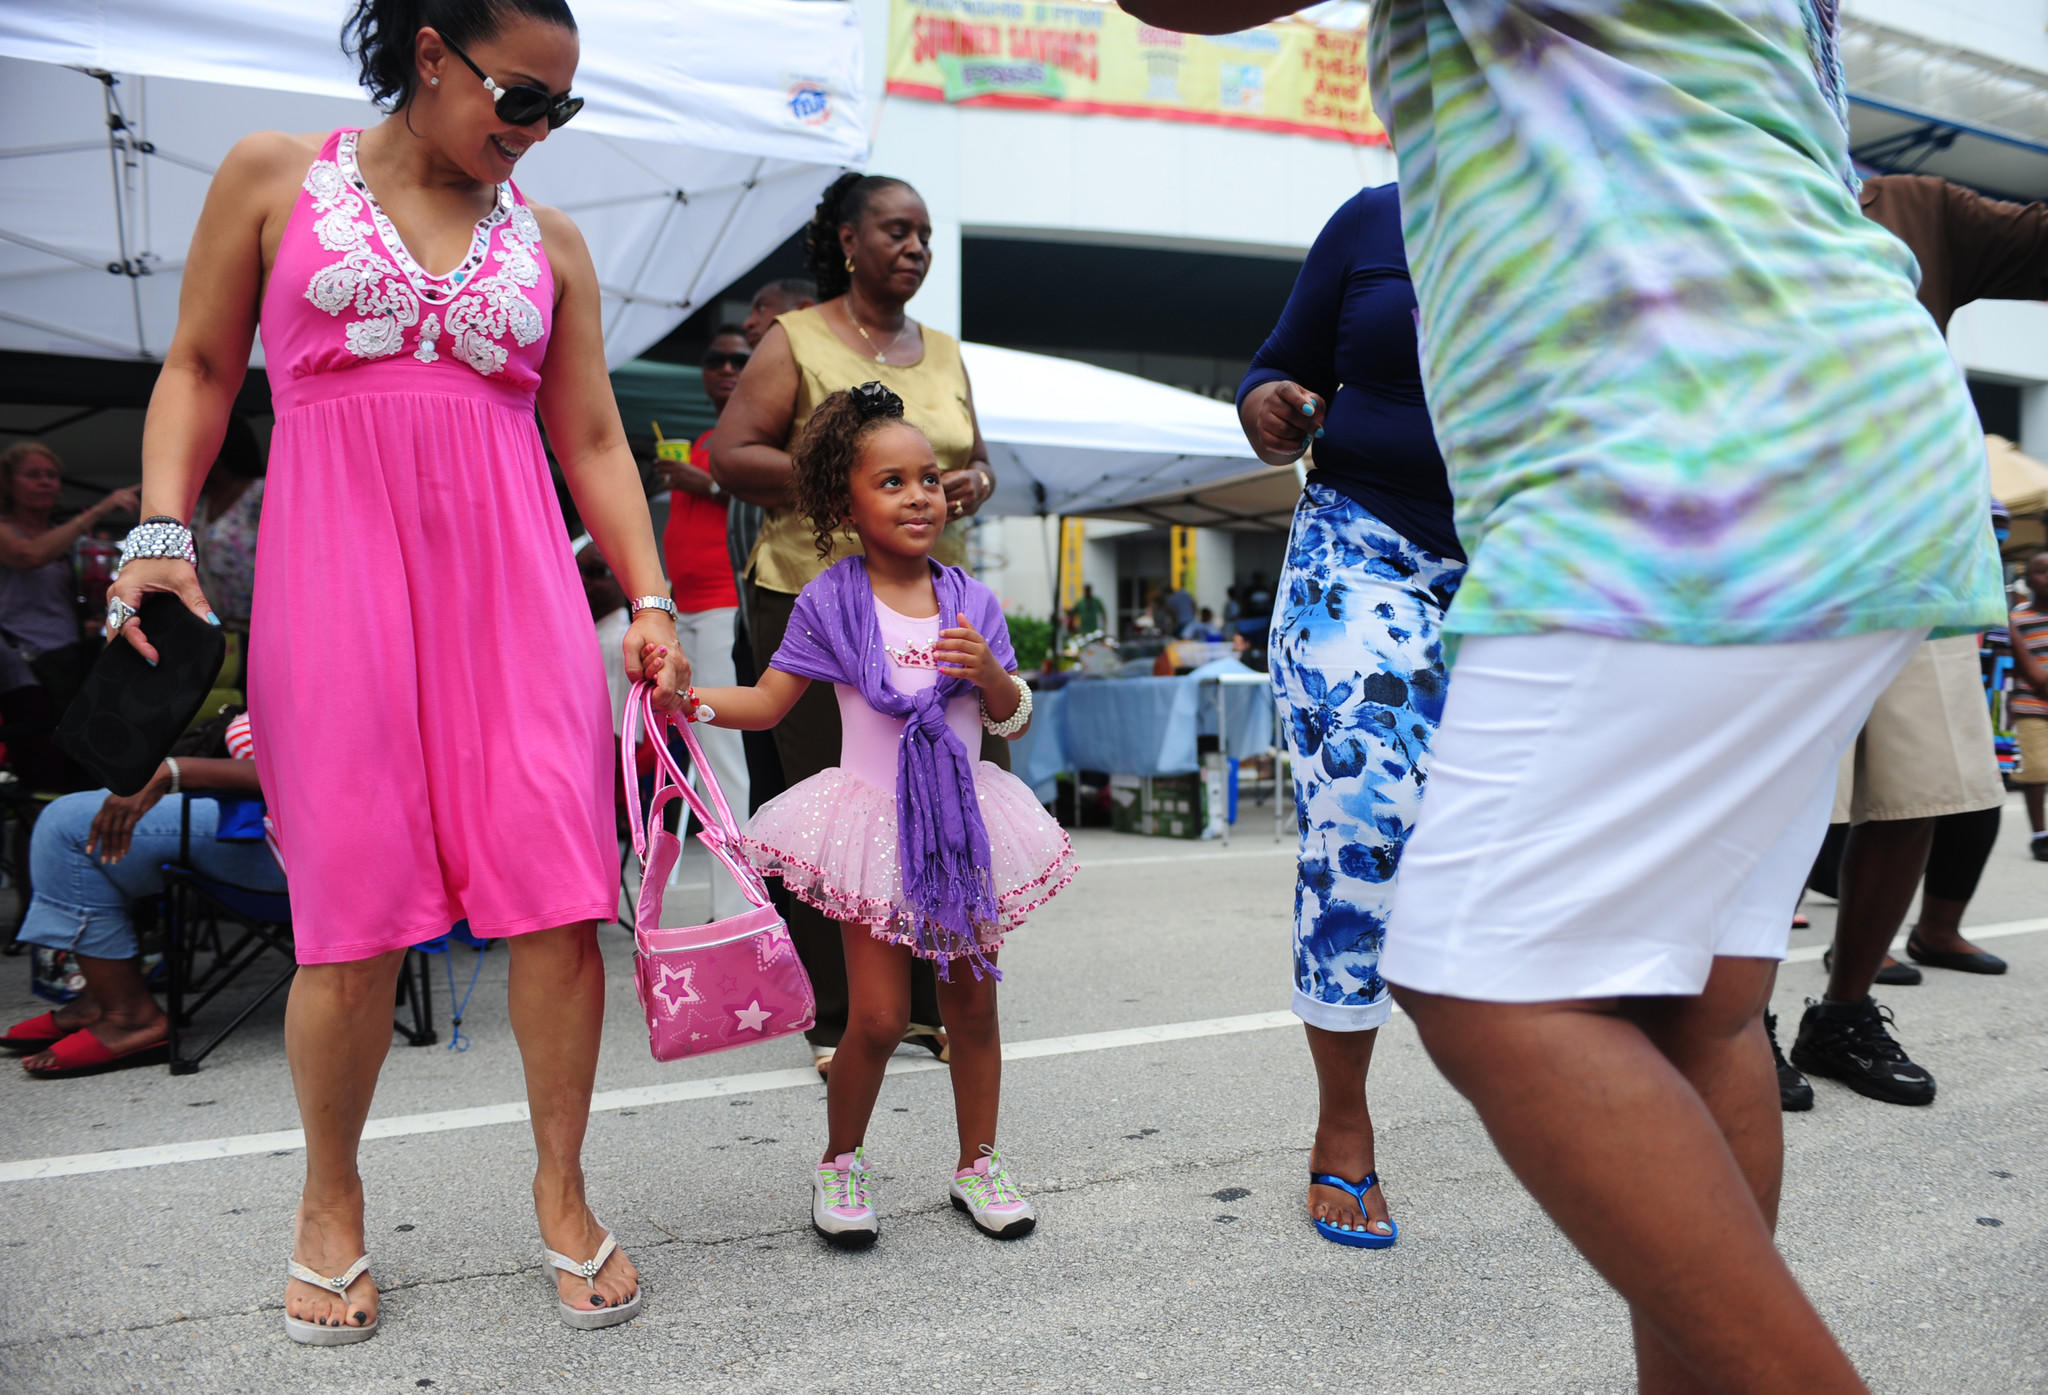 Chayanne Johnson, age 4, dances at the SunTrust Sunday Jazz Brunch at the Riverwalk in Ft. Lauderdale in August. The series takes place on the first Sunday of every month. Free water taxi service is being offered to and from the event in February.